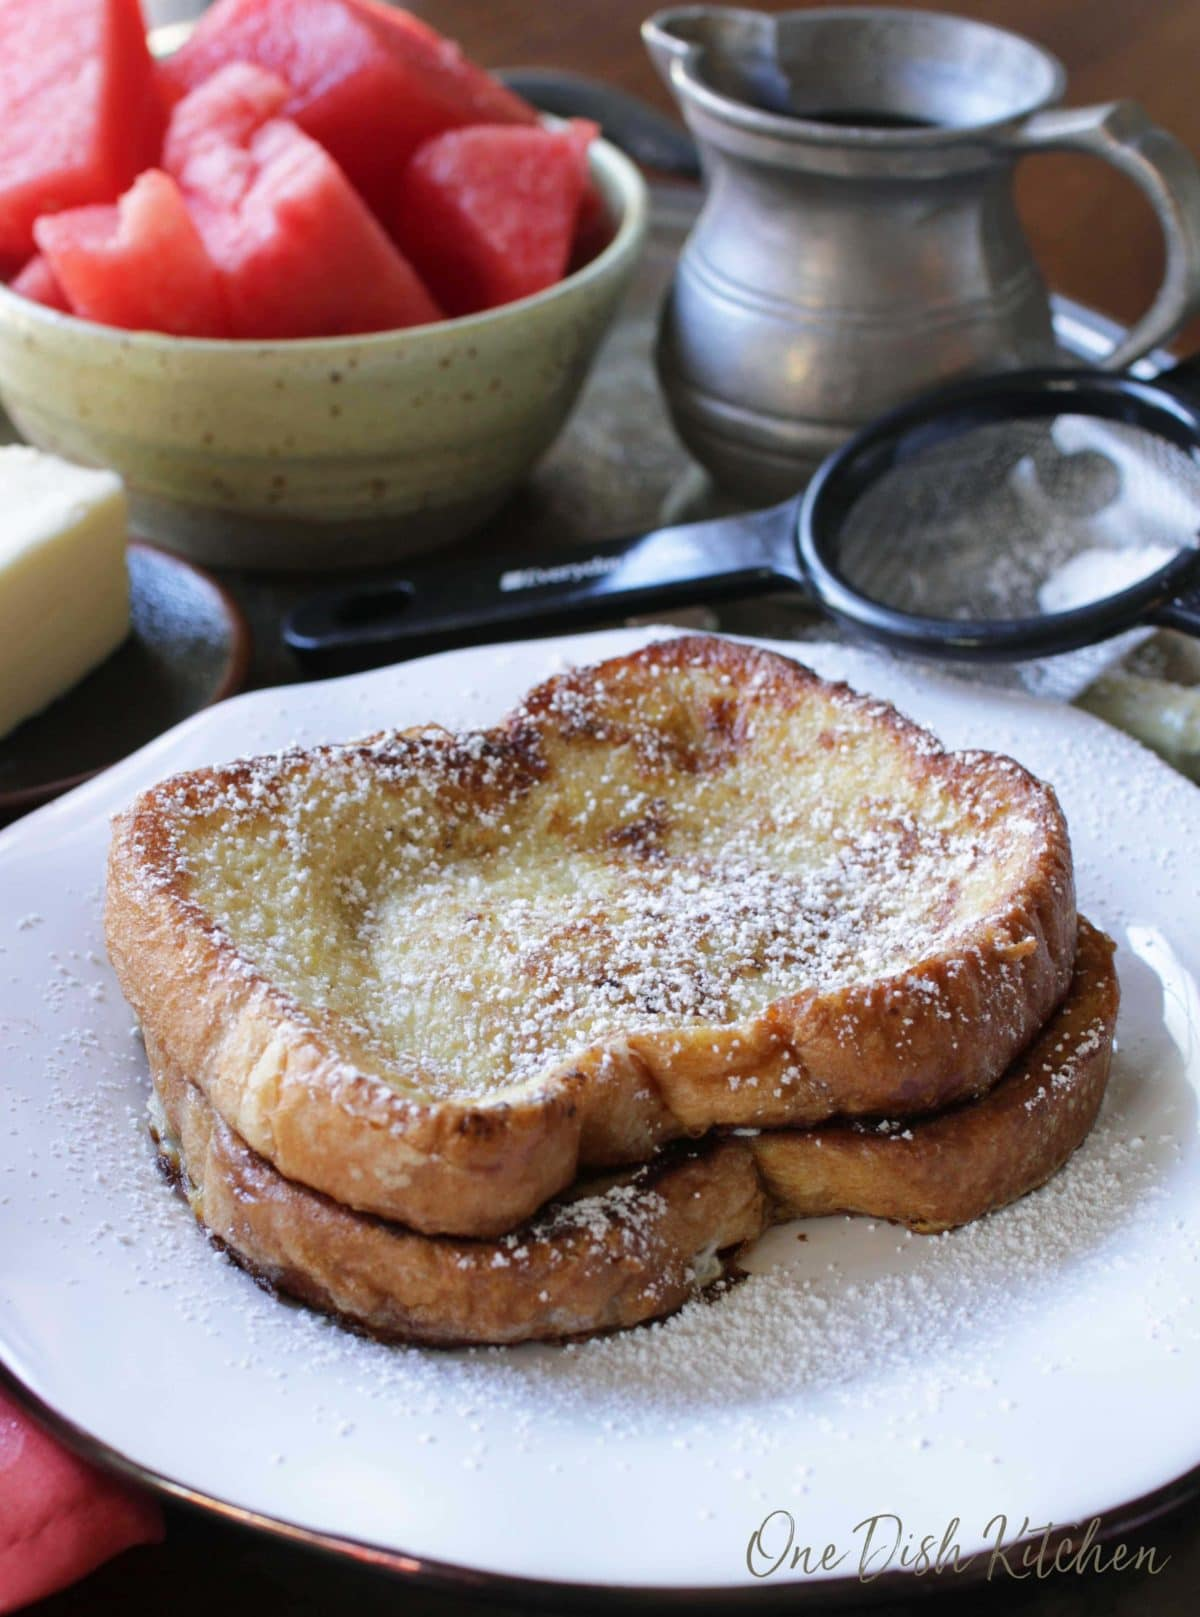 Two french toast slices dusted with powdered sugar on a metal tray with a stick of butter, a bowl of watermelon slices, and a metal container of maple syrup